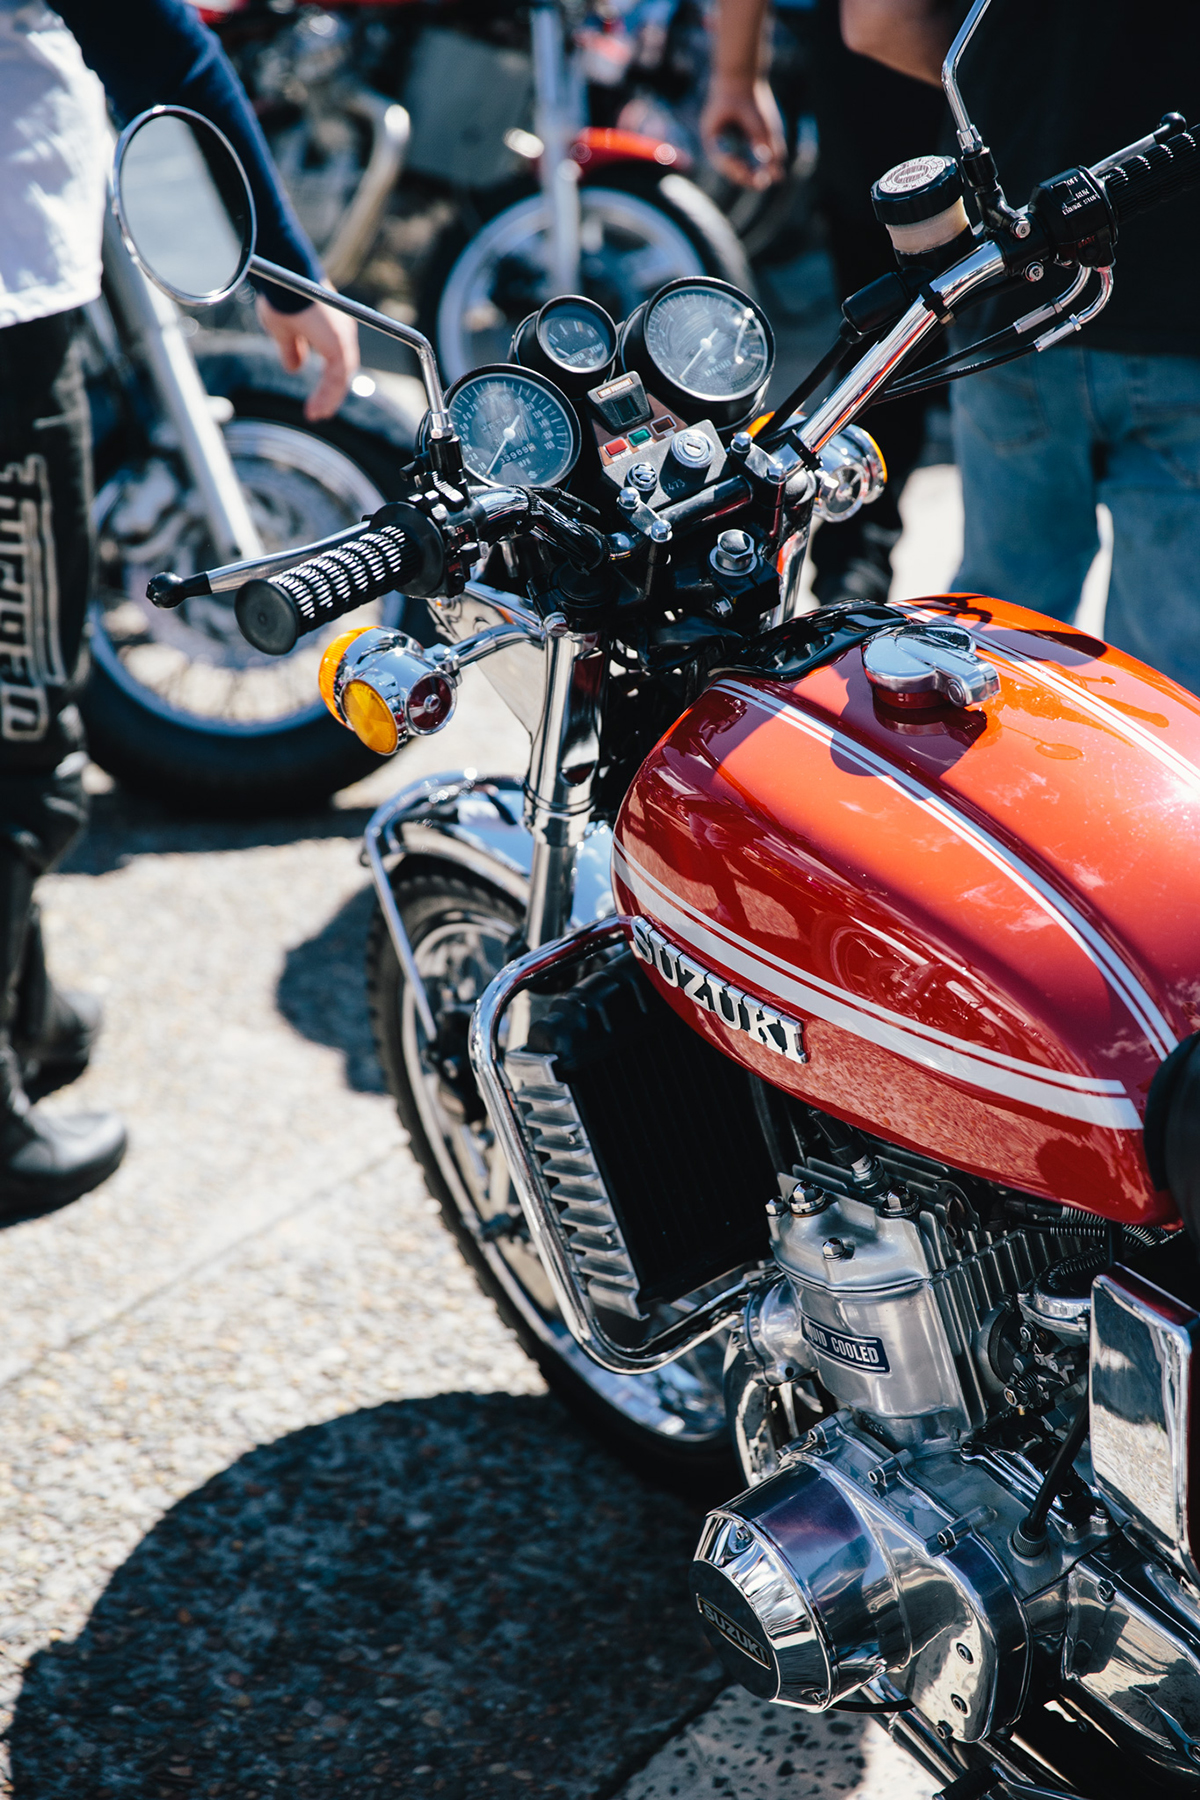 Surfside_Motorcycle_Japanese_8535